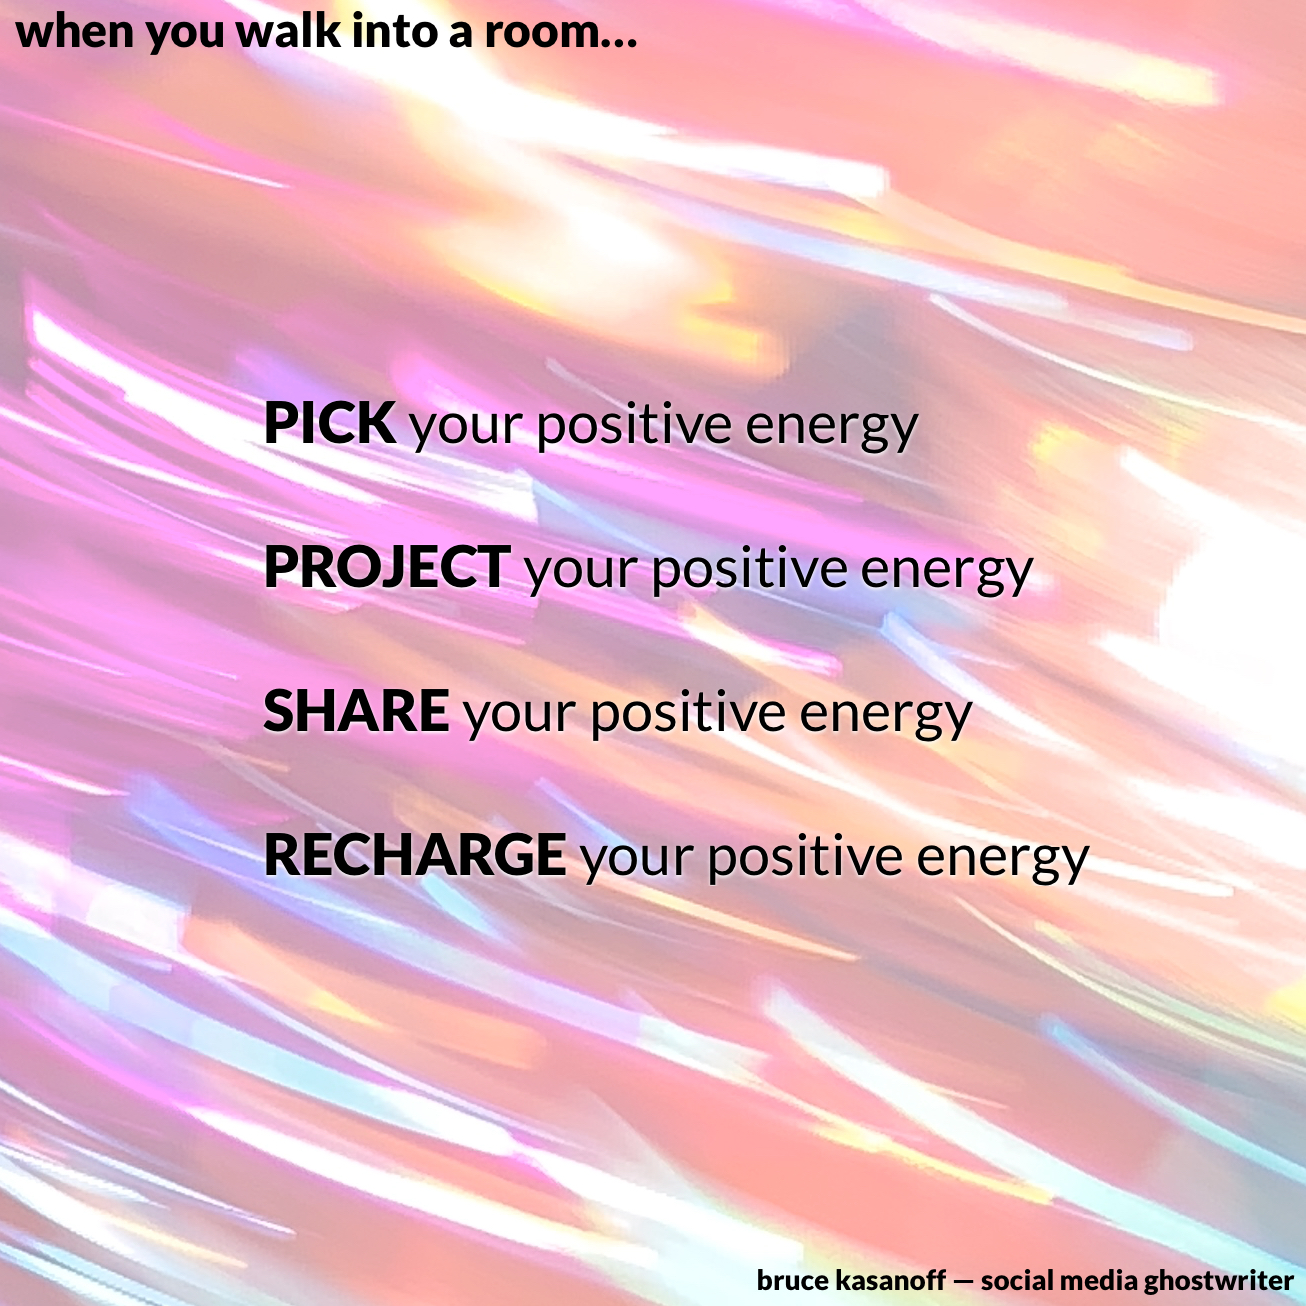 pick your positive energy.jpg